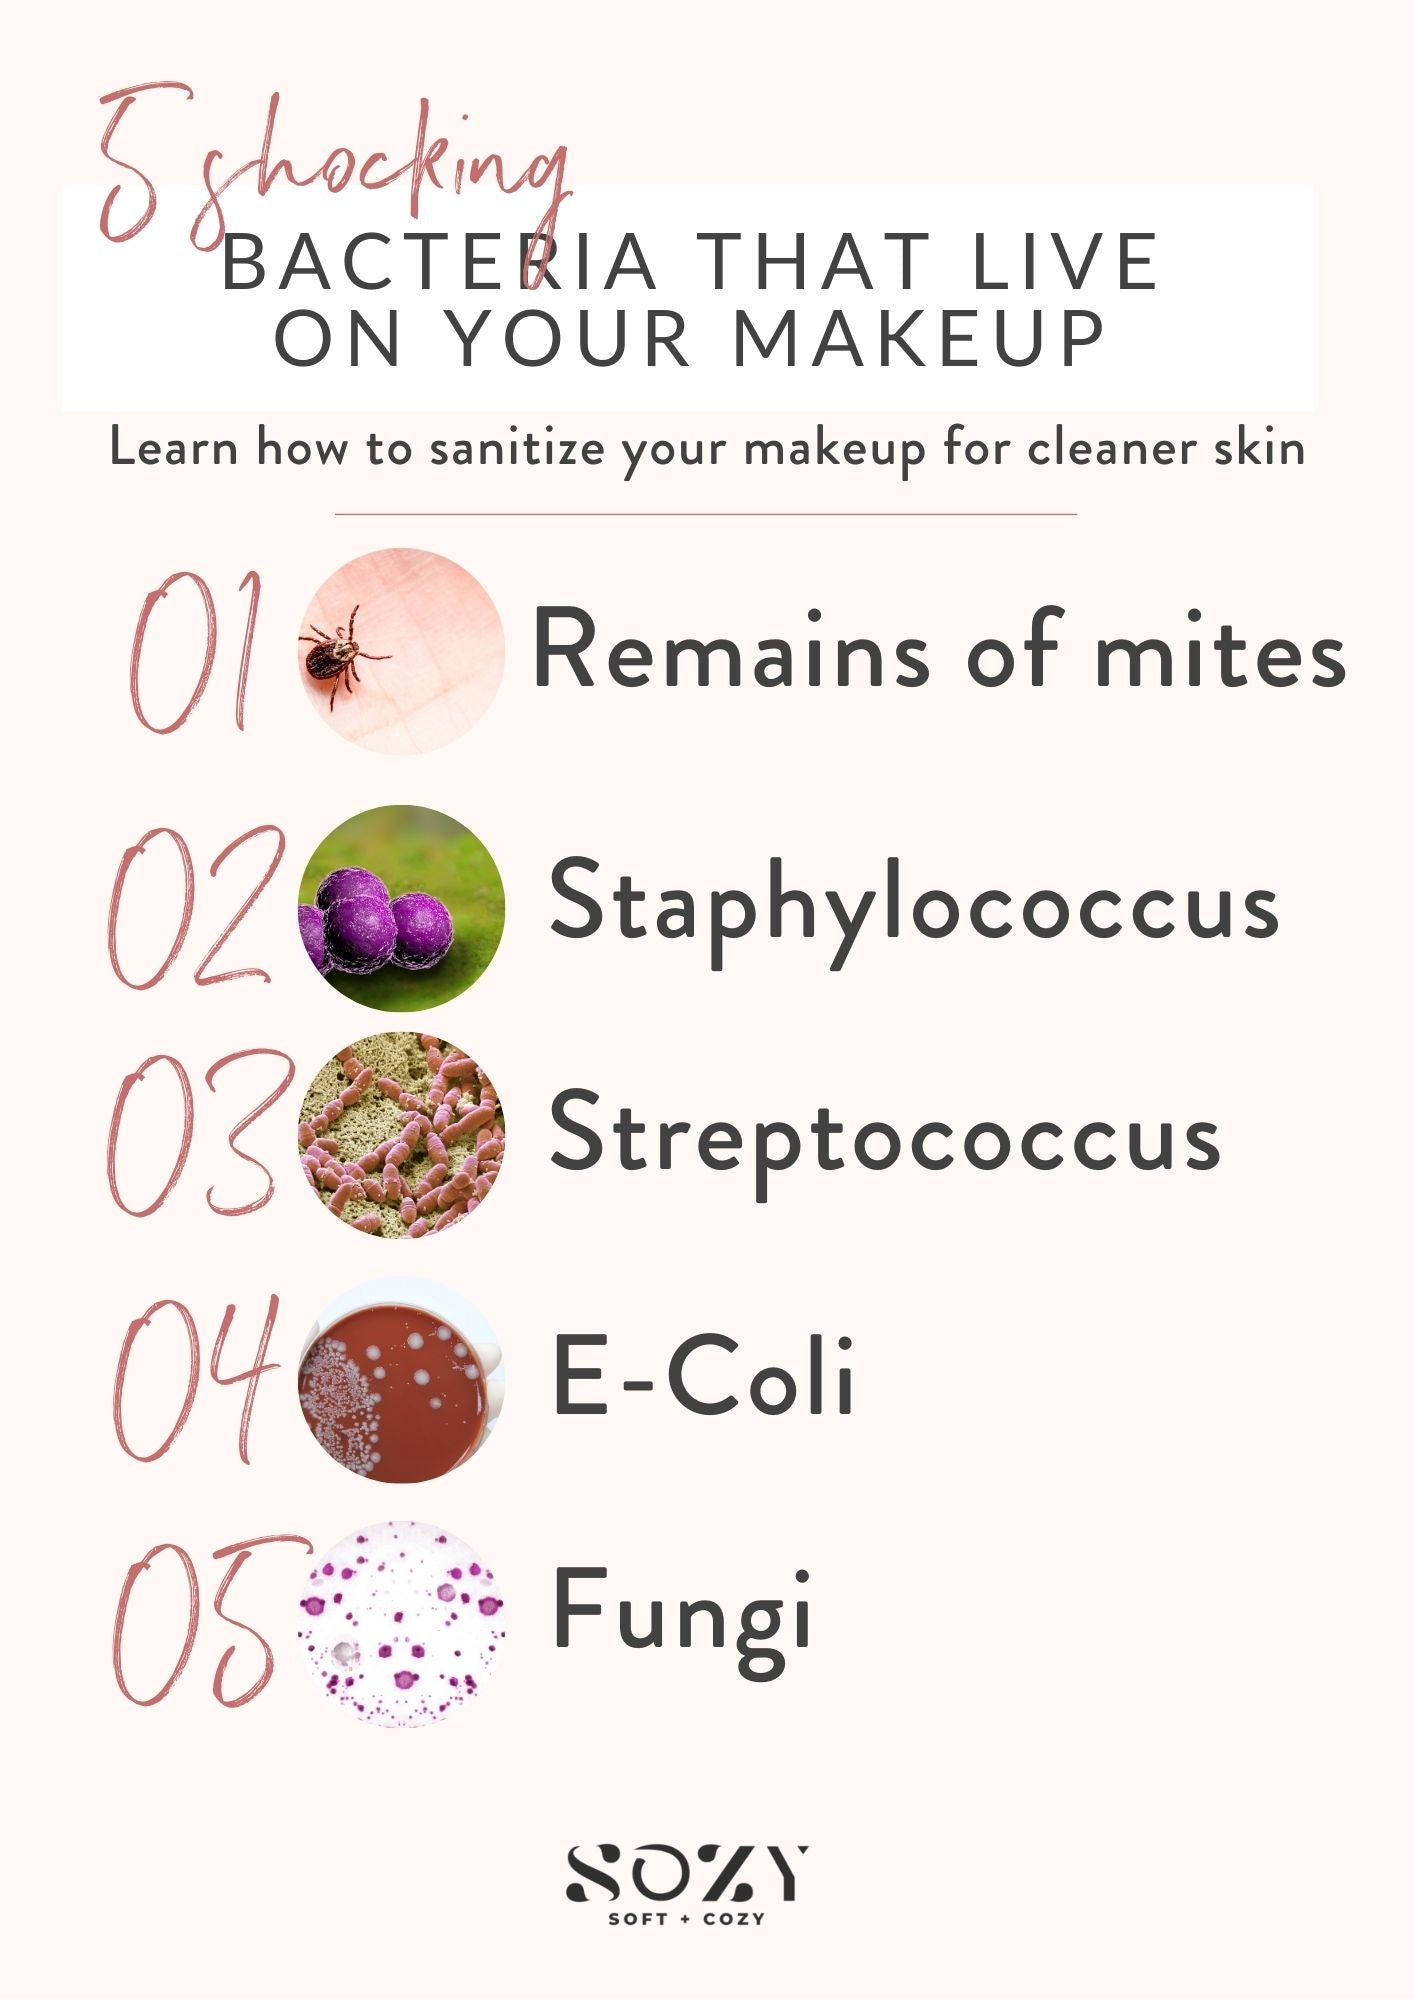 common bacteria found in makeup